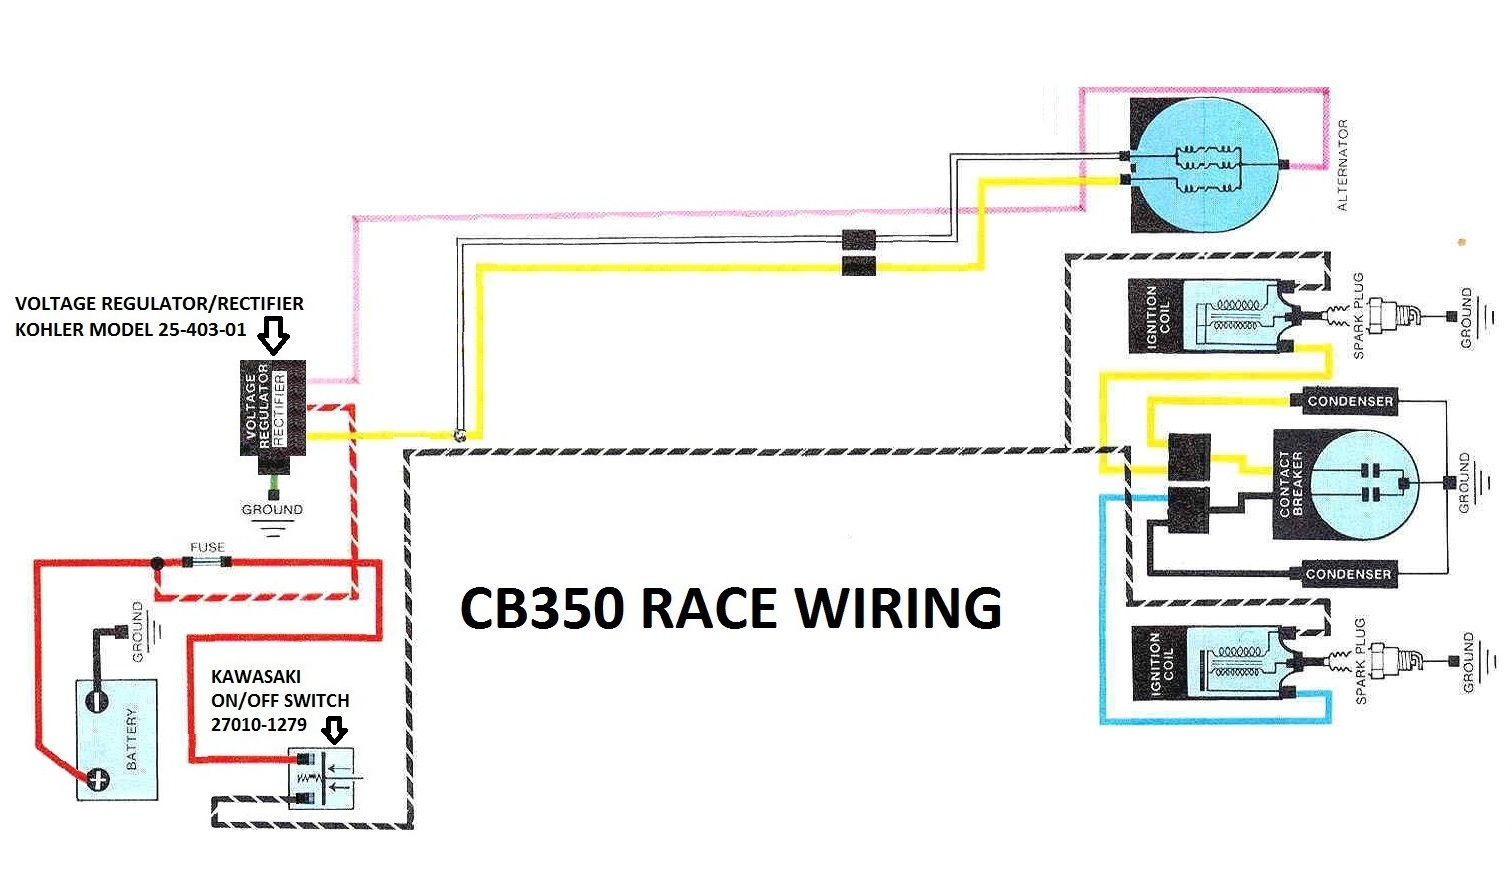 Basic Ignition Wiring Diagram No Battery Library Regulator Cb350 Race A Question About Voltage